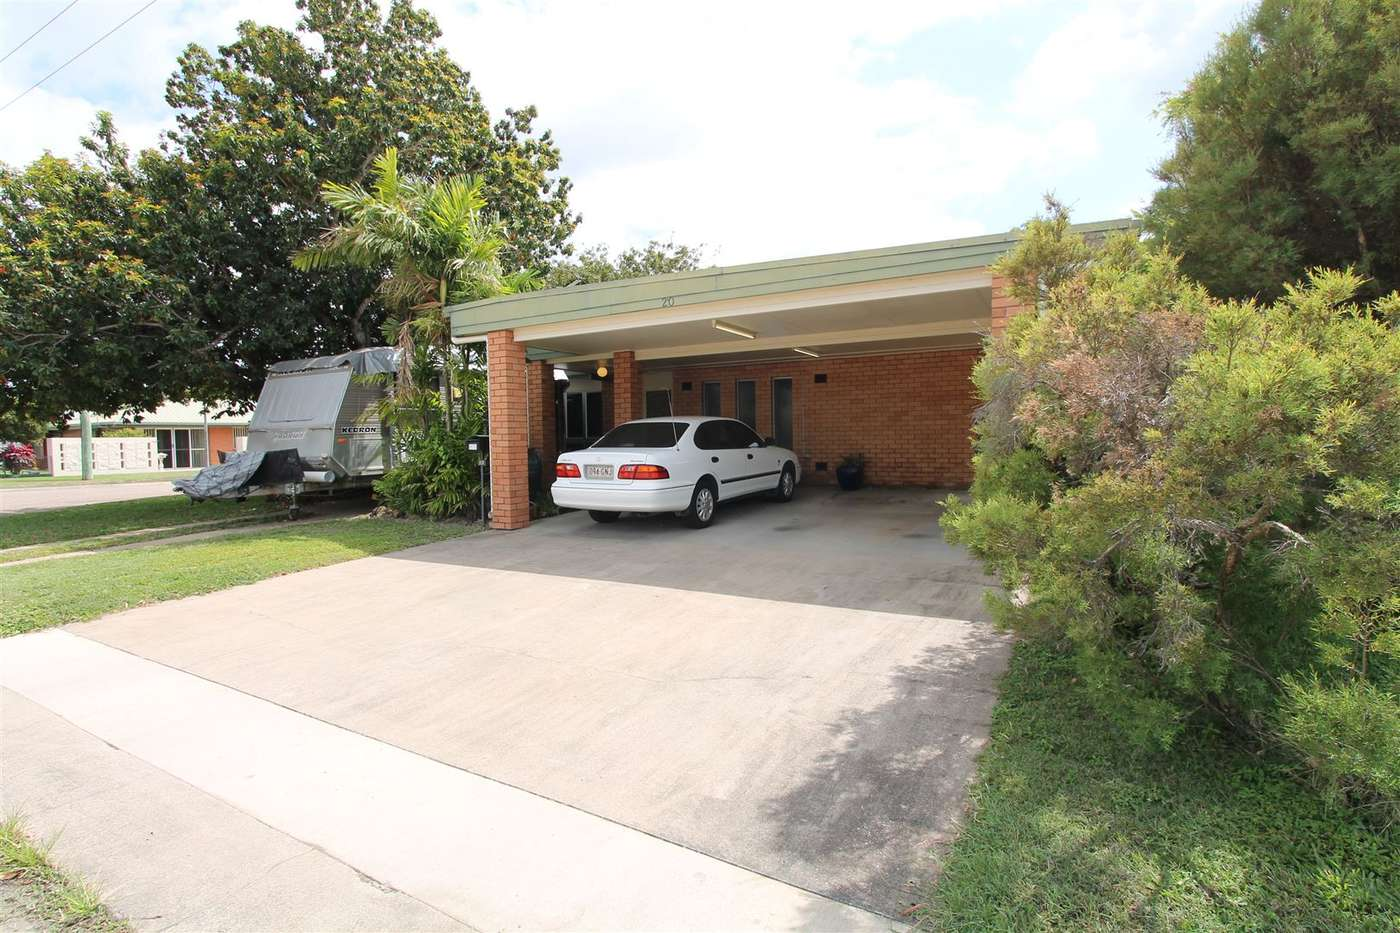 Main view of Homely house listing, 20 Betina Street, Ayr, QLD 4807